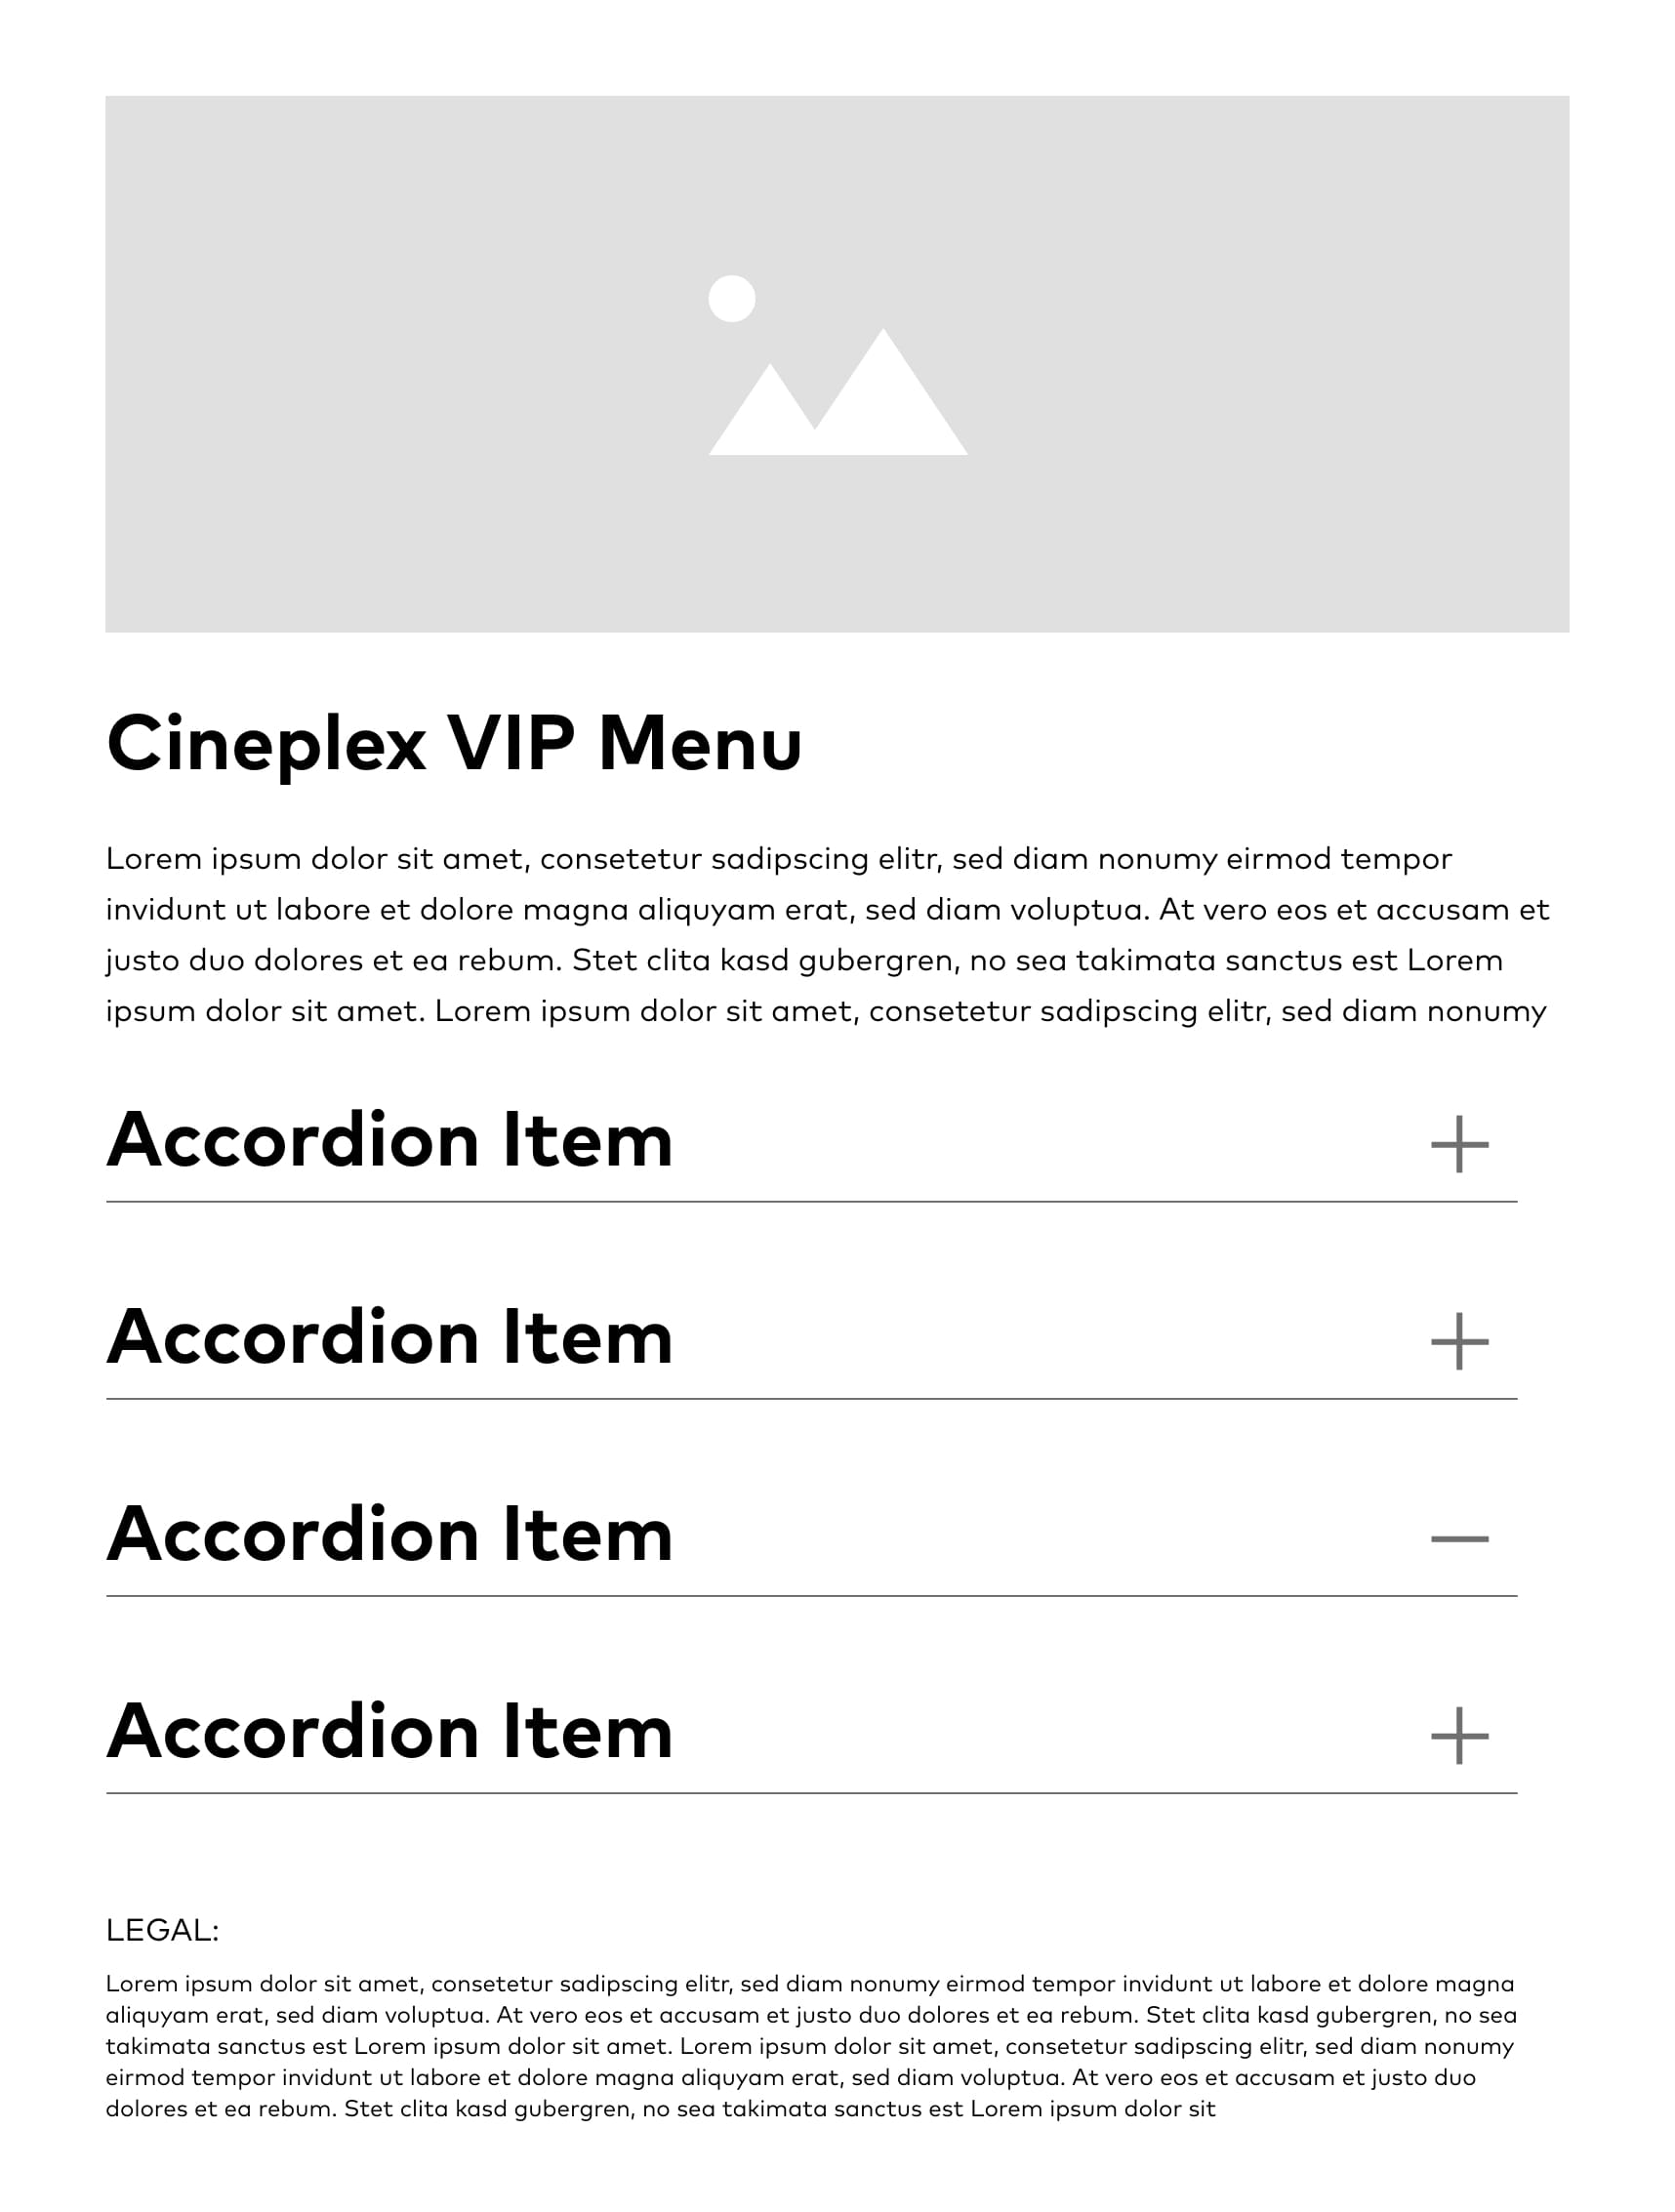 Revamped accordion layout